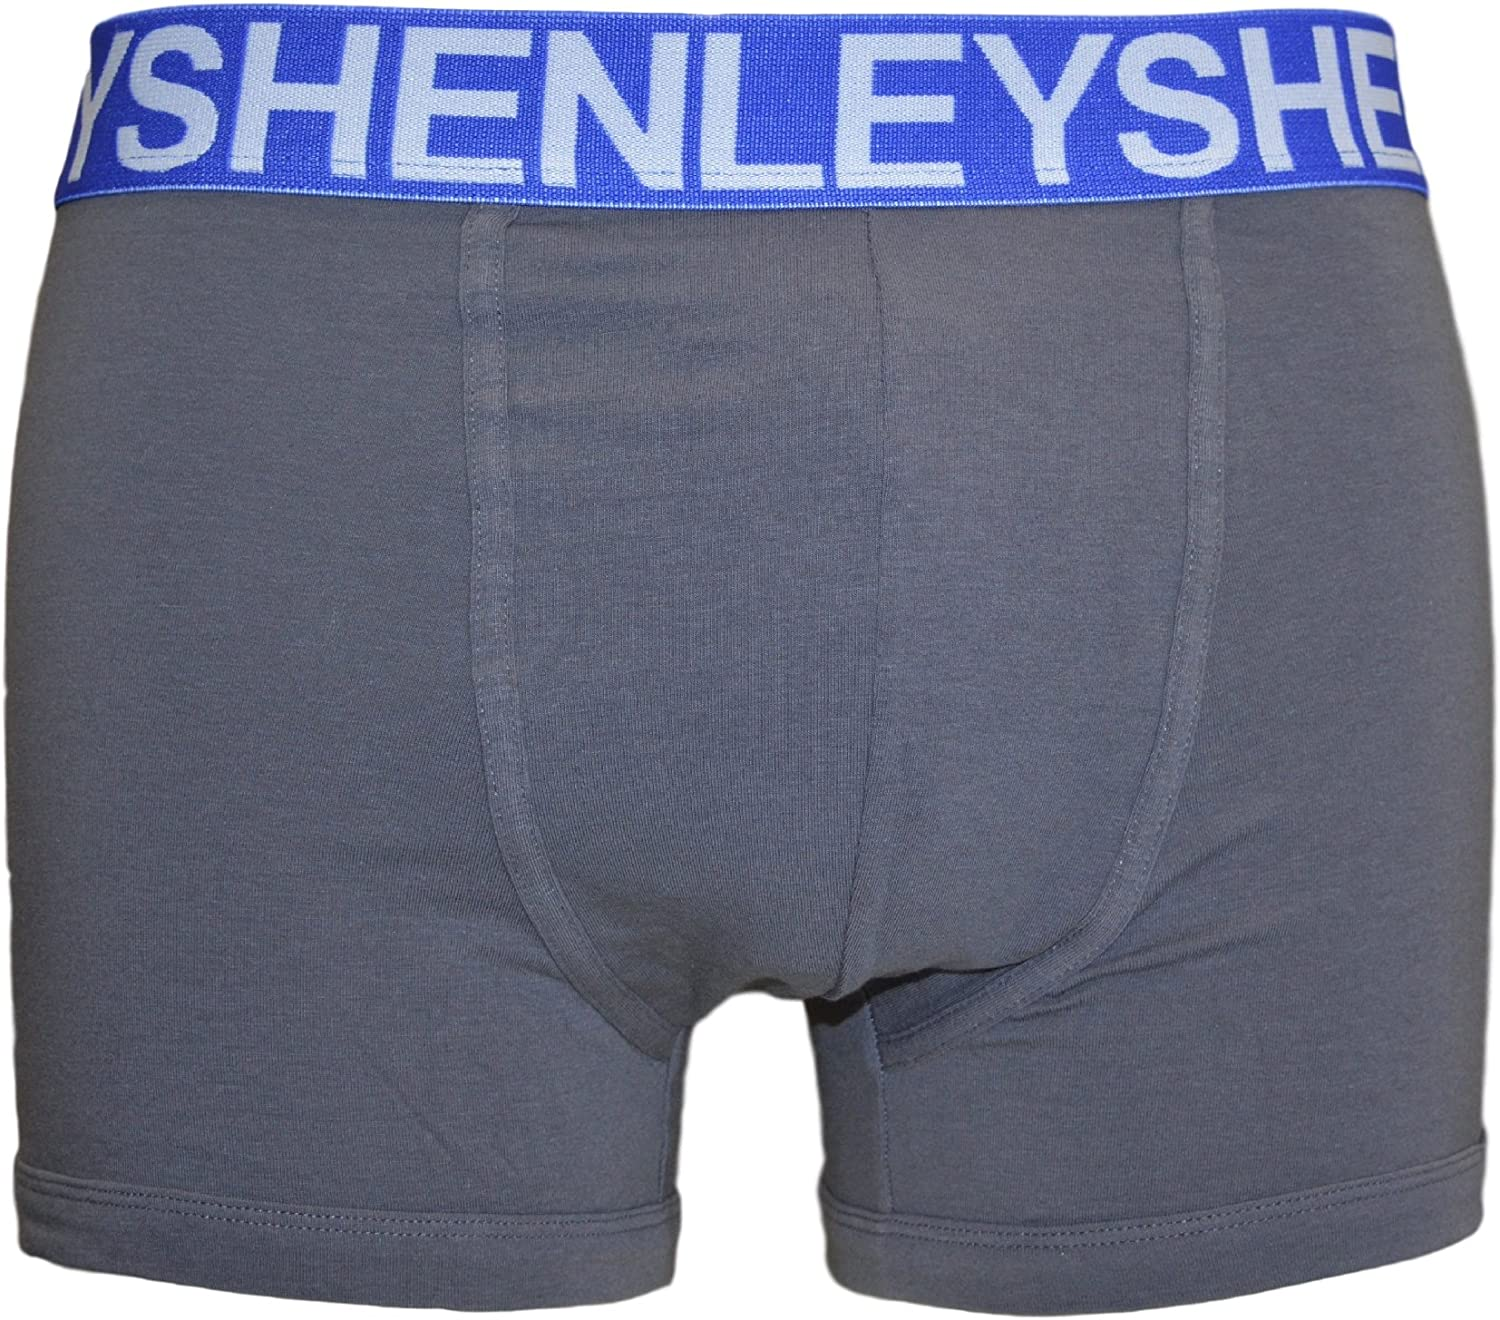 3 Pack Henleys Cotton Trunk